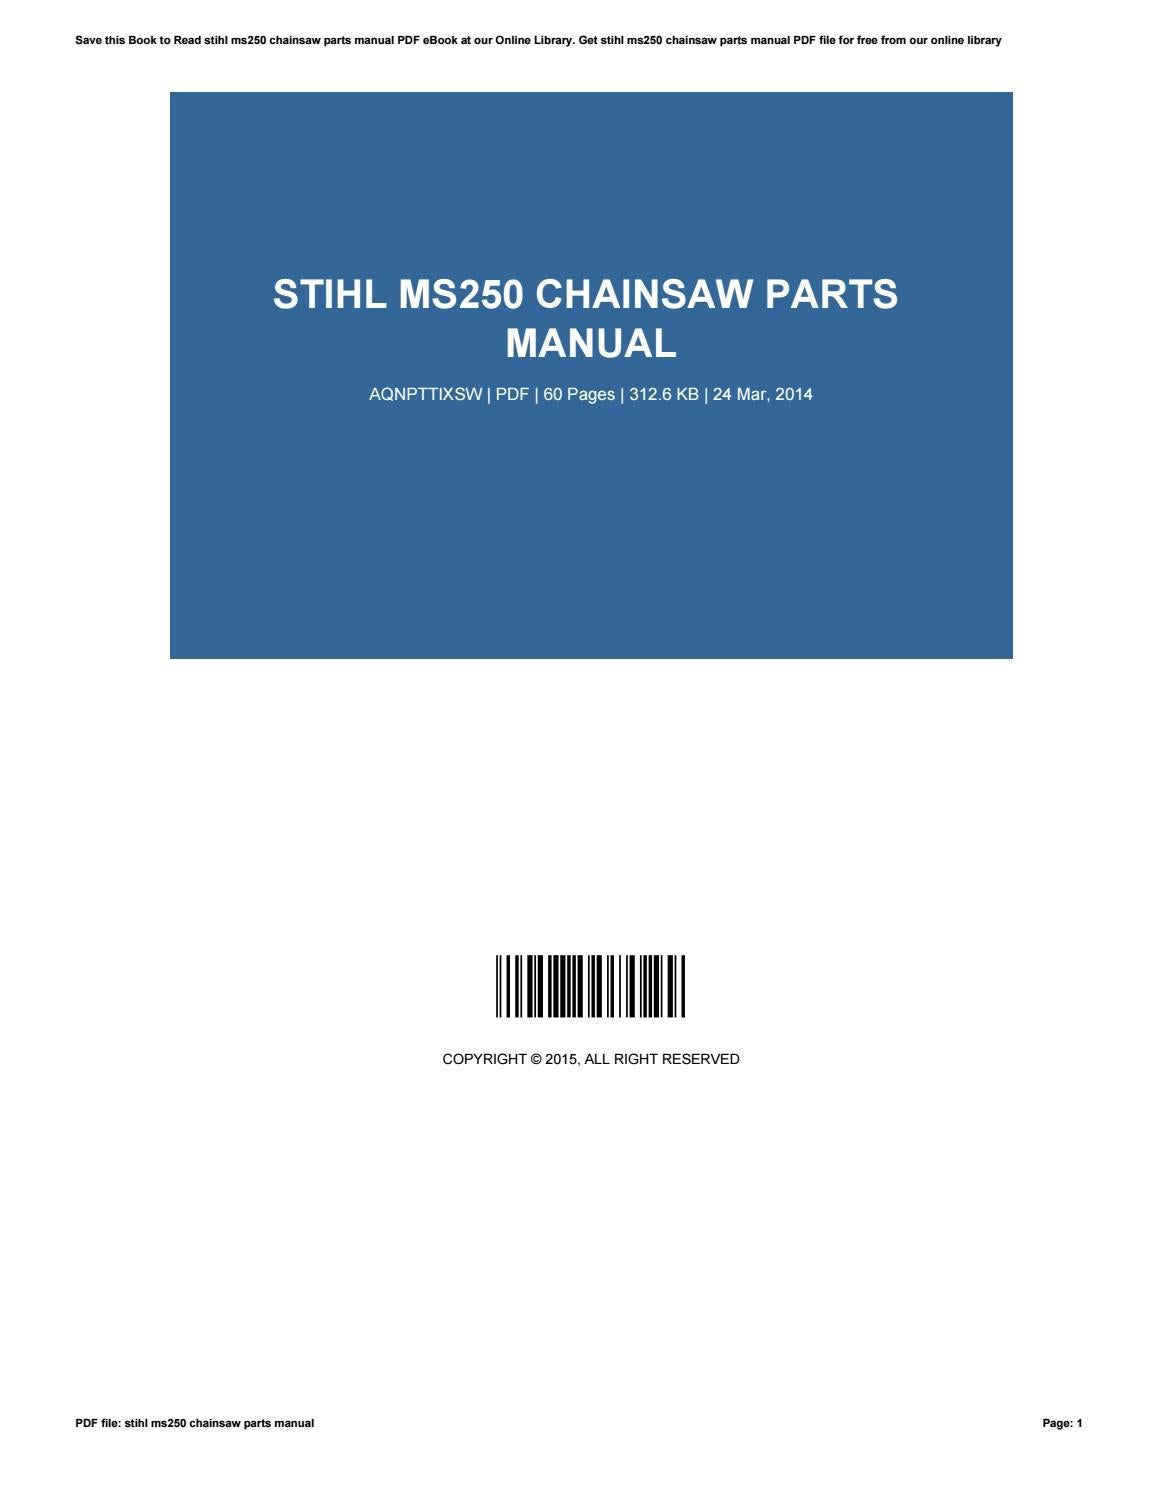 Stihl ms250 chainsaw parts manual by JamesBrown18651 - issuu